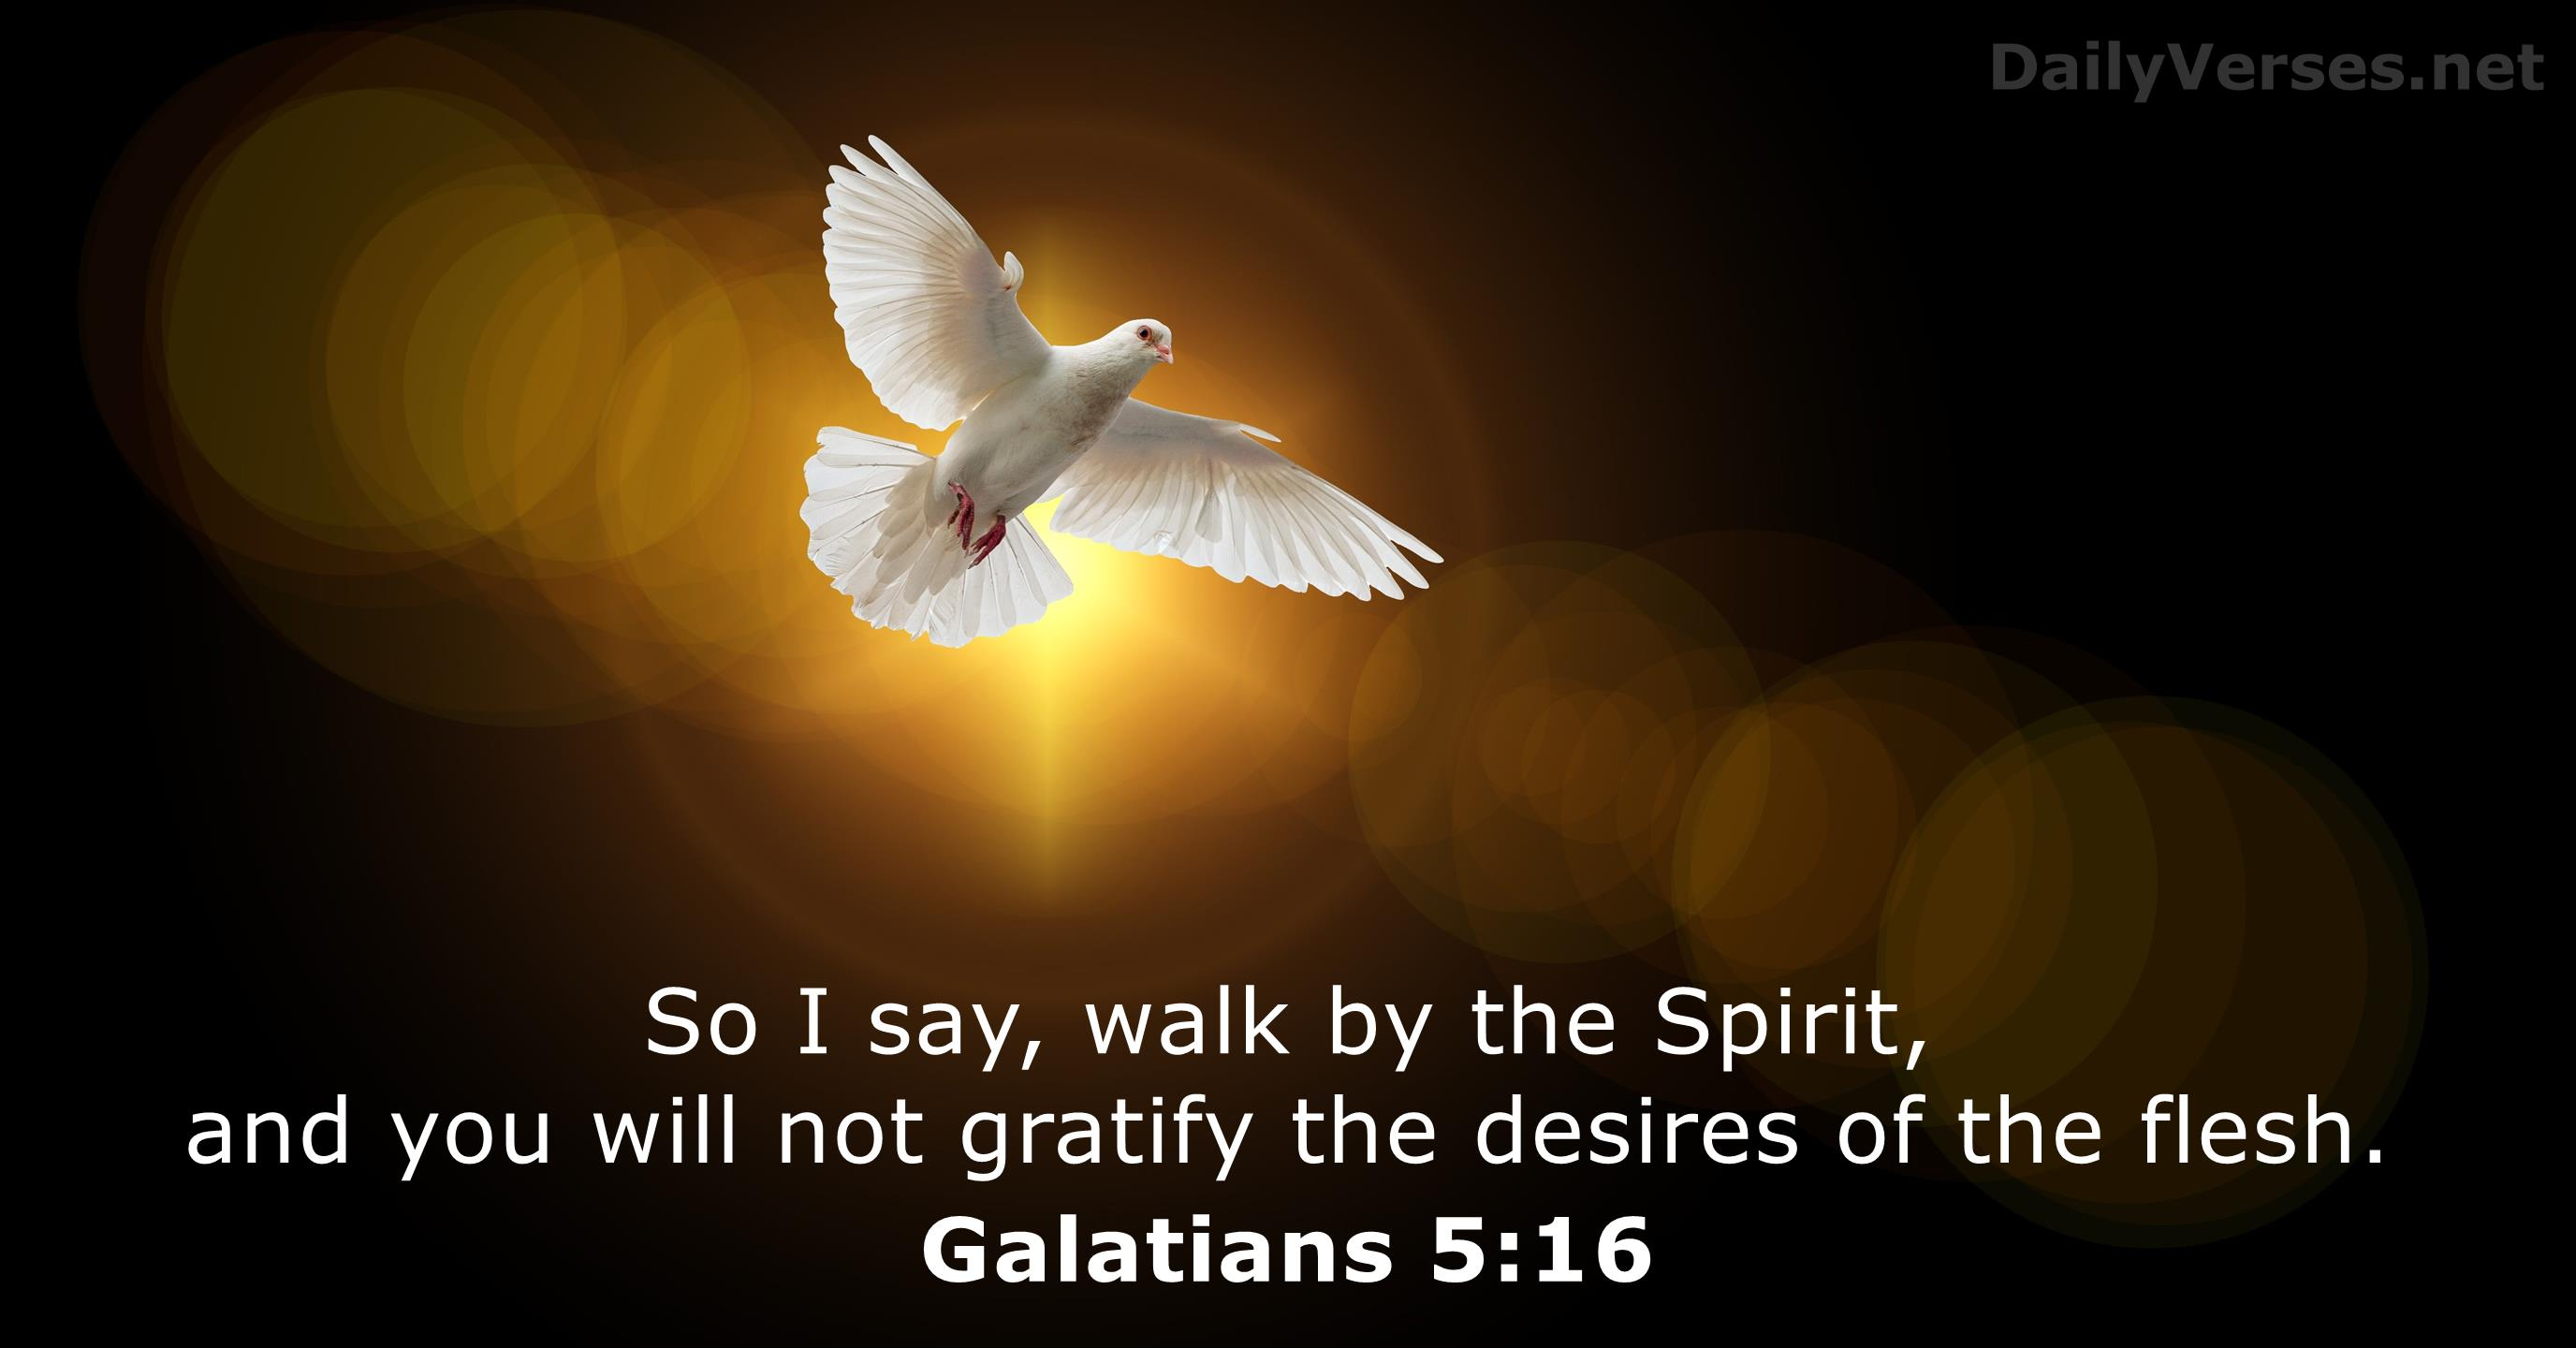 May 7, 2020 - Bible verse of the day - Galatians 5:16 ...